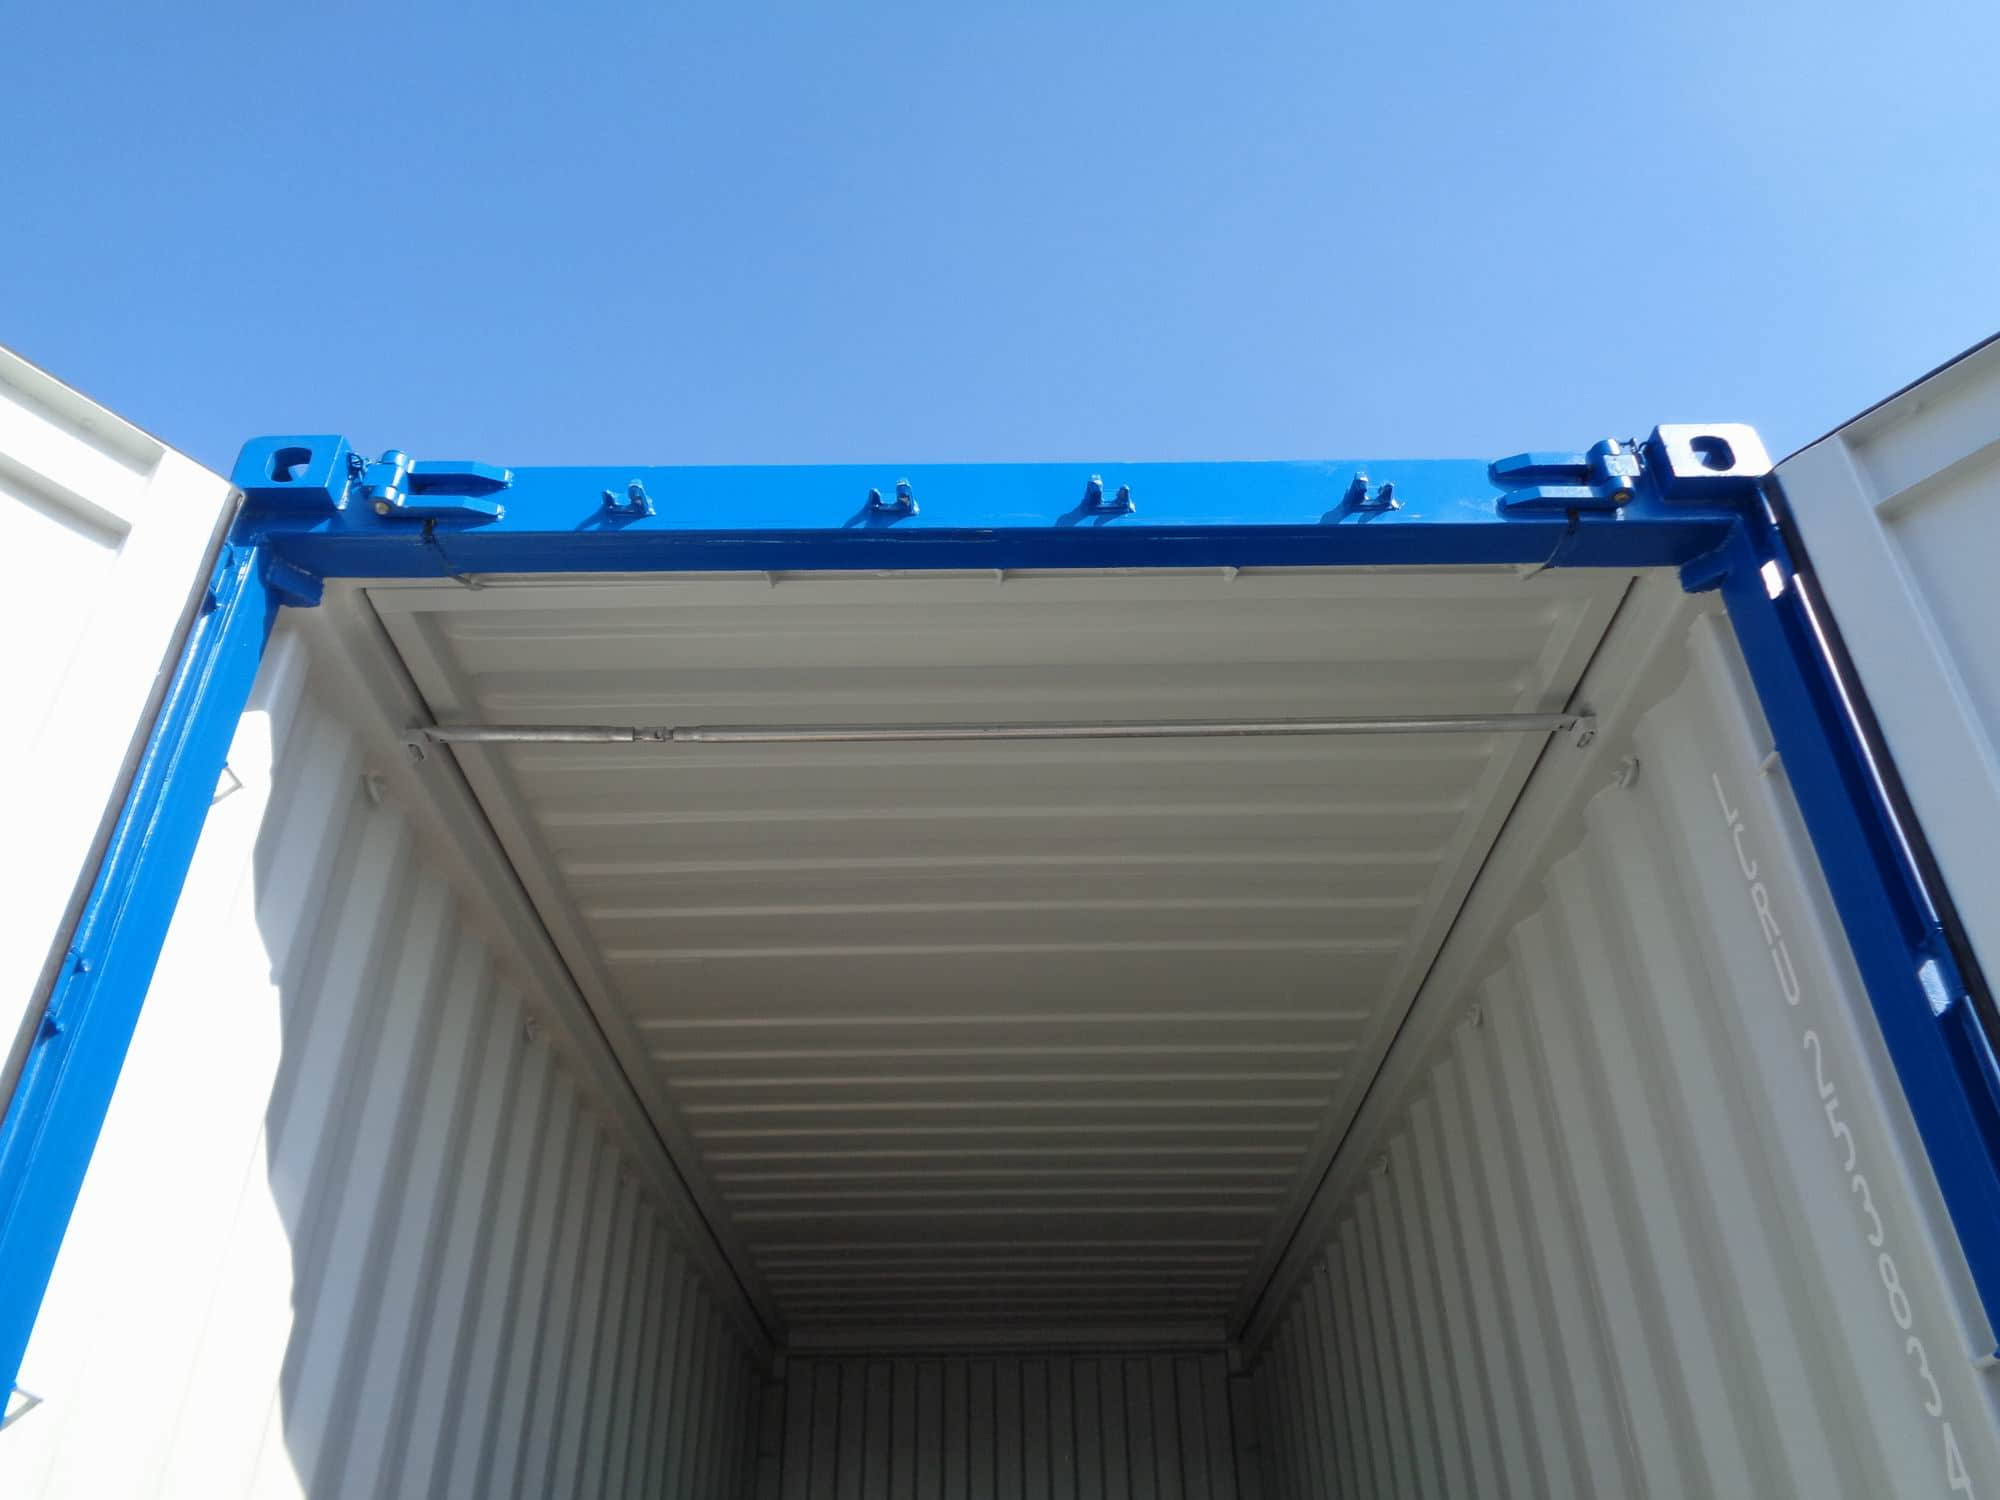 20' hard open top container – internal review